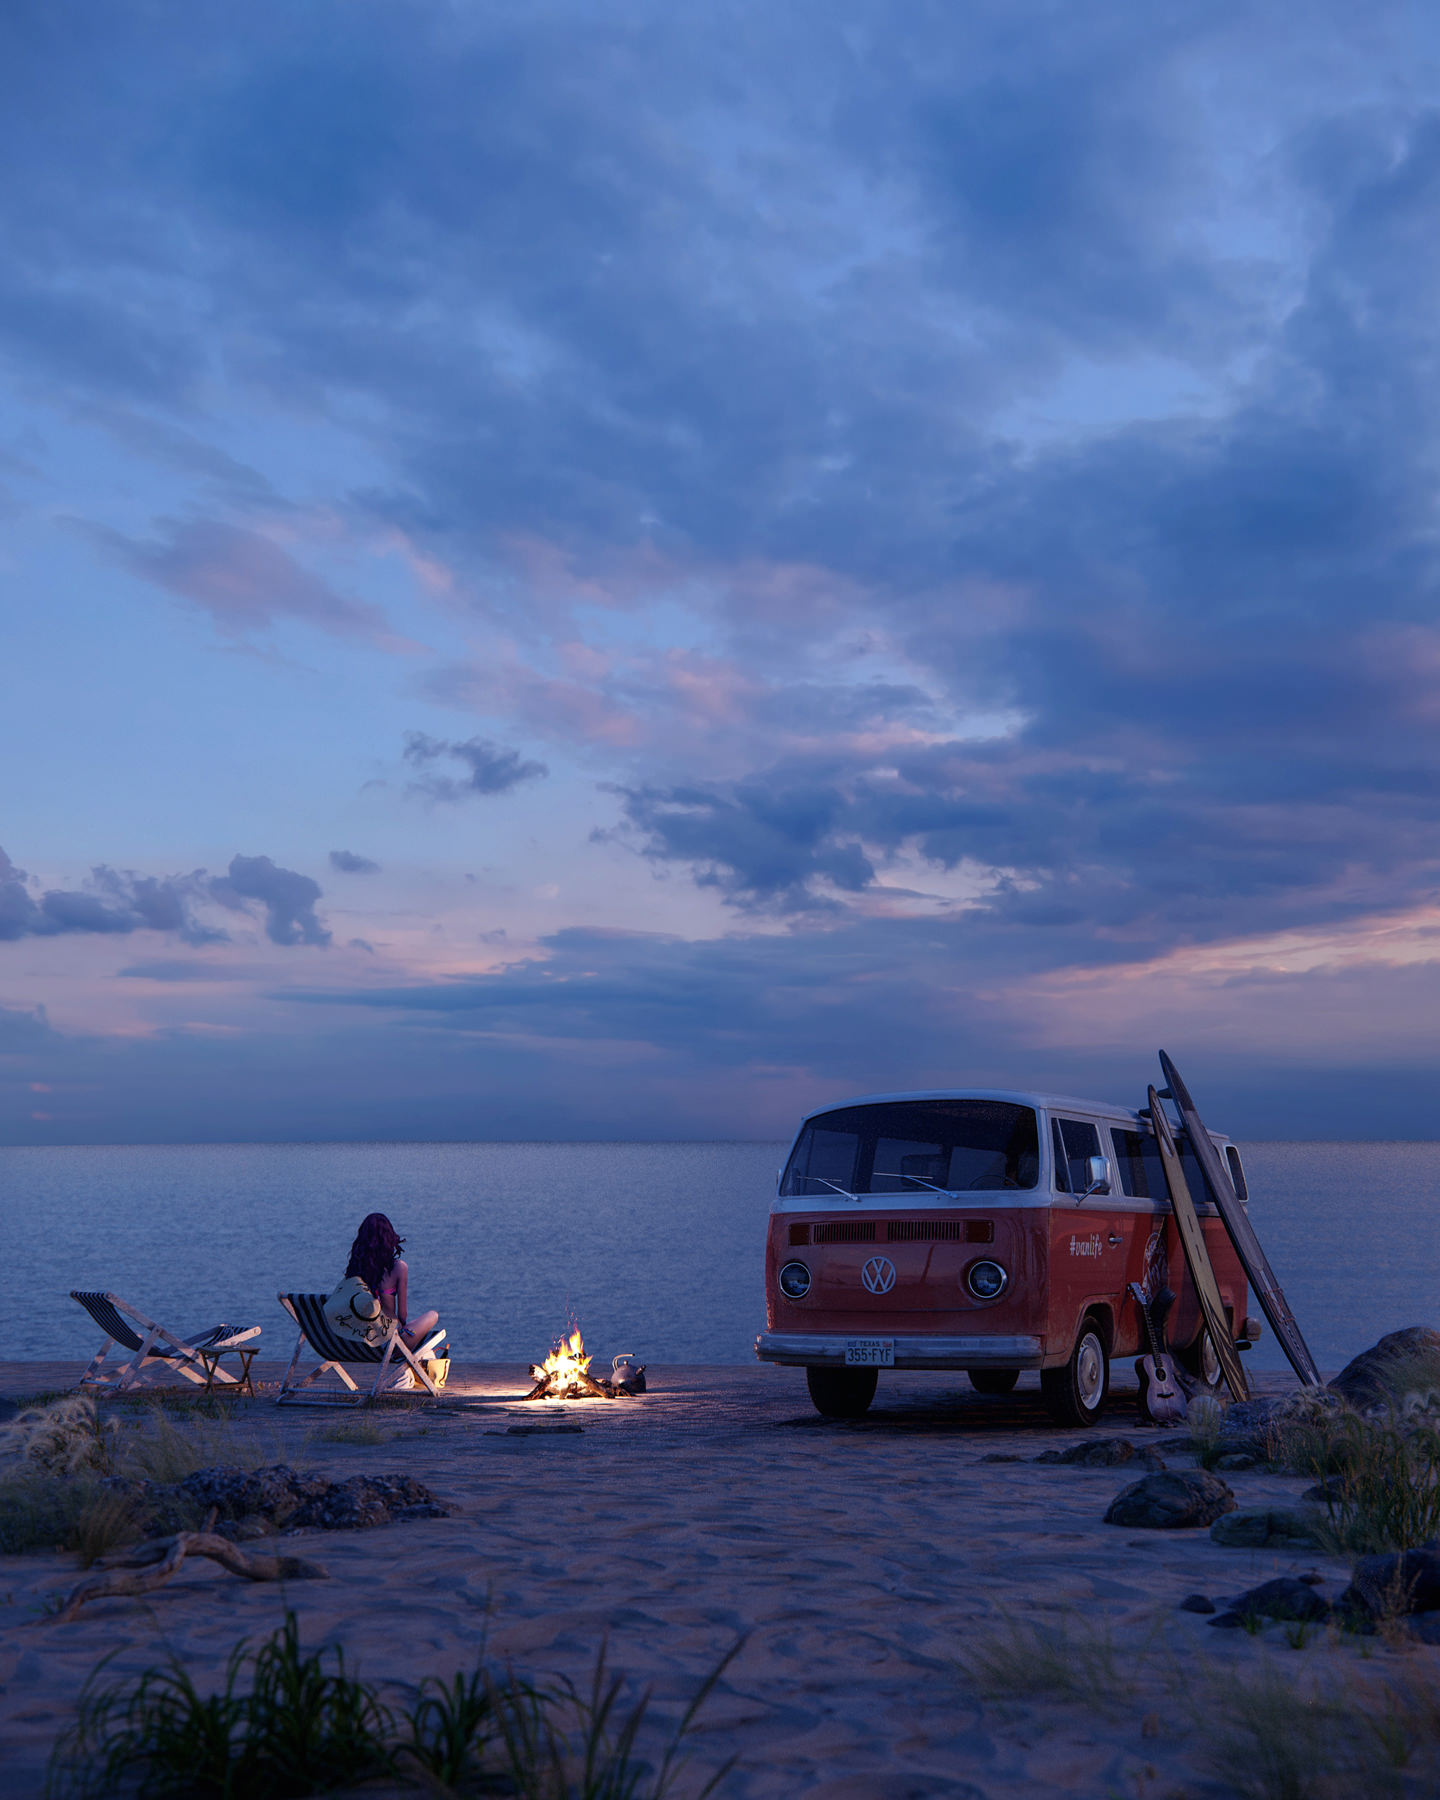 An eye-level dusk 3D visualization of the ocean and the sand beach where a woman is sitting crosslegged on the lounge chair near the cozy campfire and her faithful companion - her red travel van - enjoying her vacation